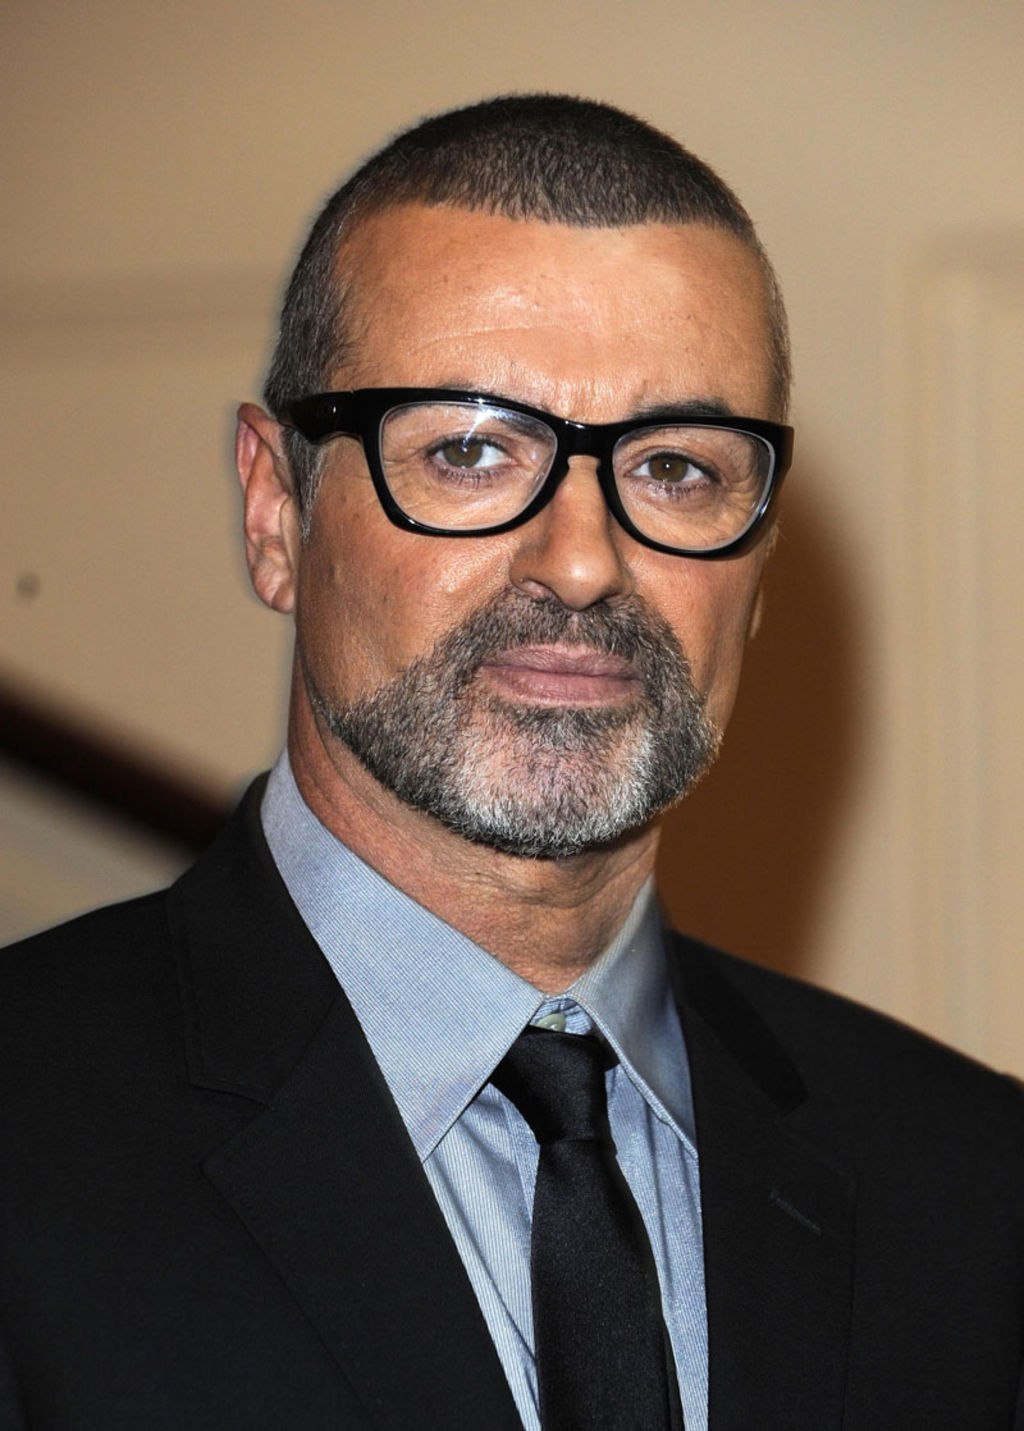 George michael pop superstar has died at 53 new york times - Georgios Kyriacos Panayiotou Professionally Known As George Michael Has Died At The Age 53 25 June 1963 25 December 2016